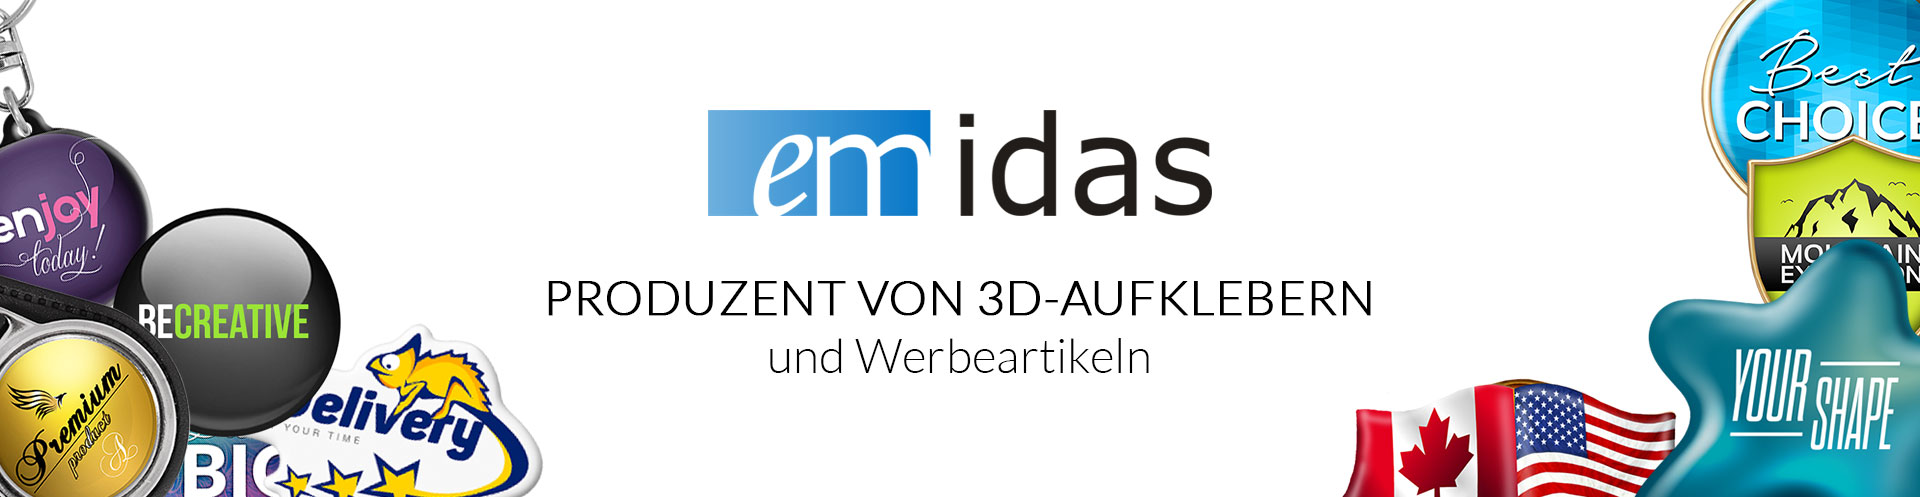 EMIDAS | Manufacturer of 3D stickers and promotional materials